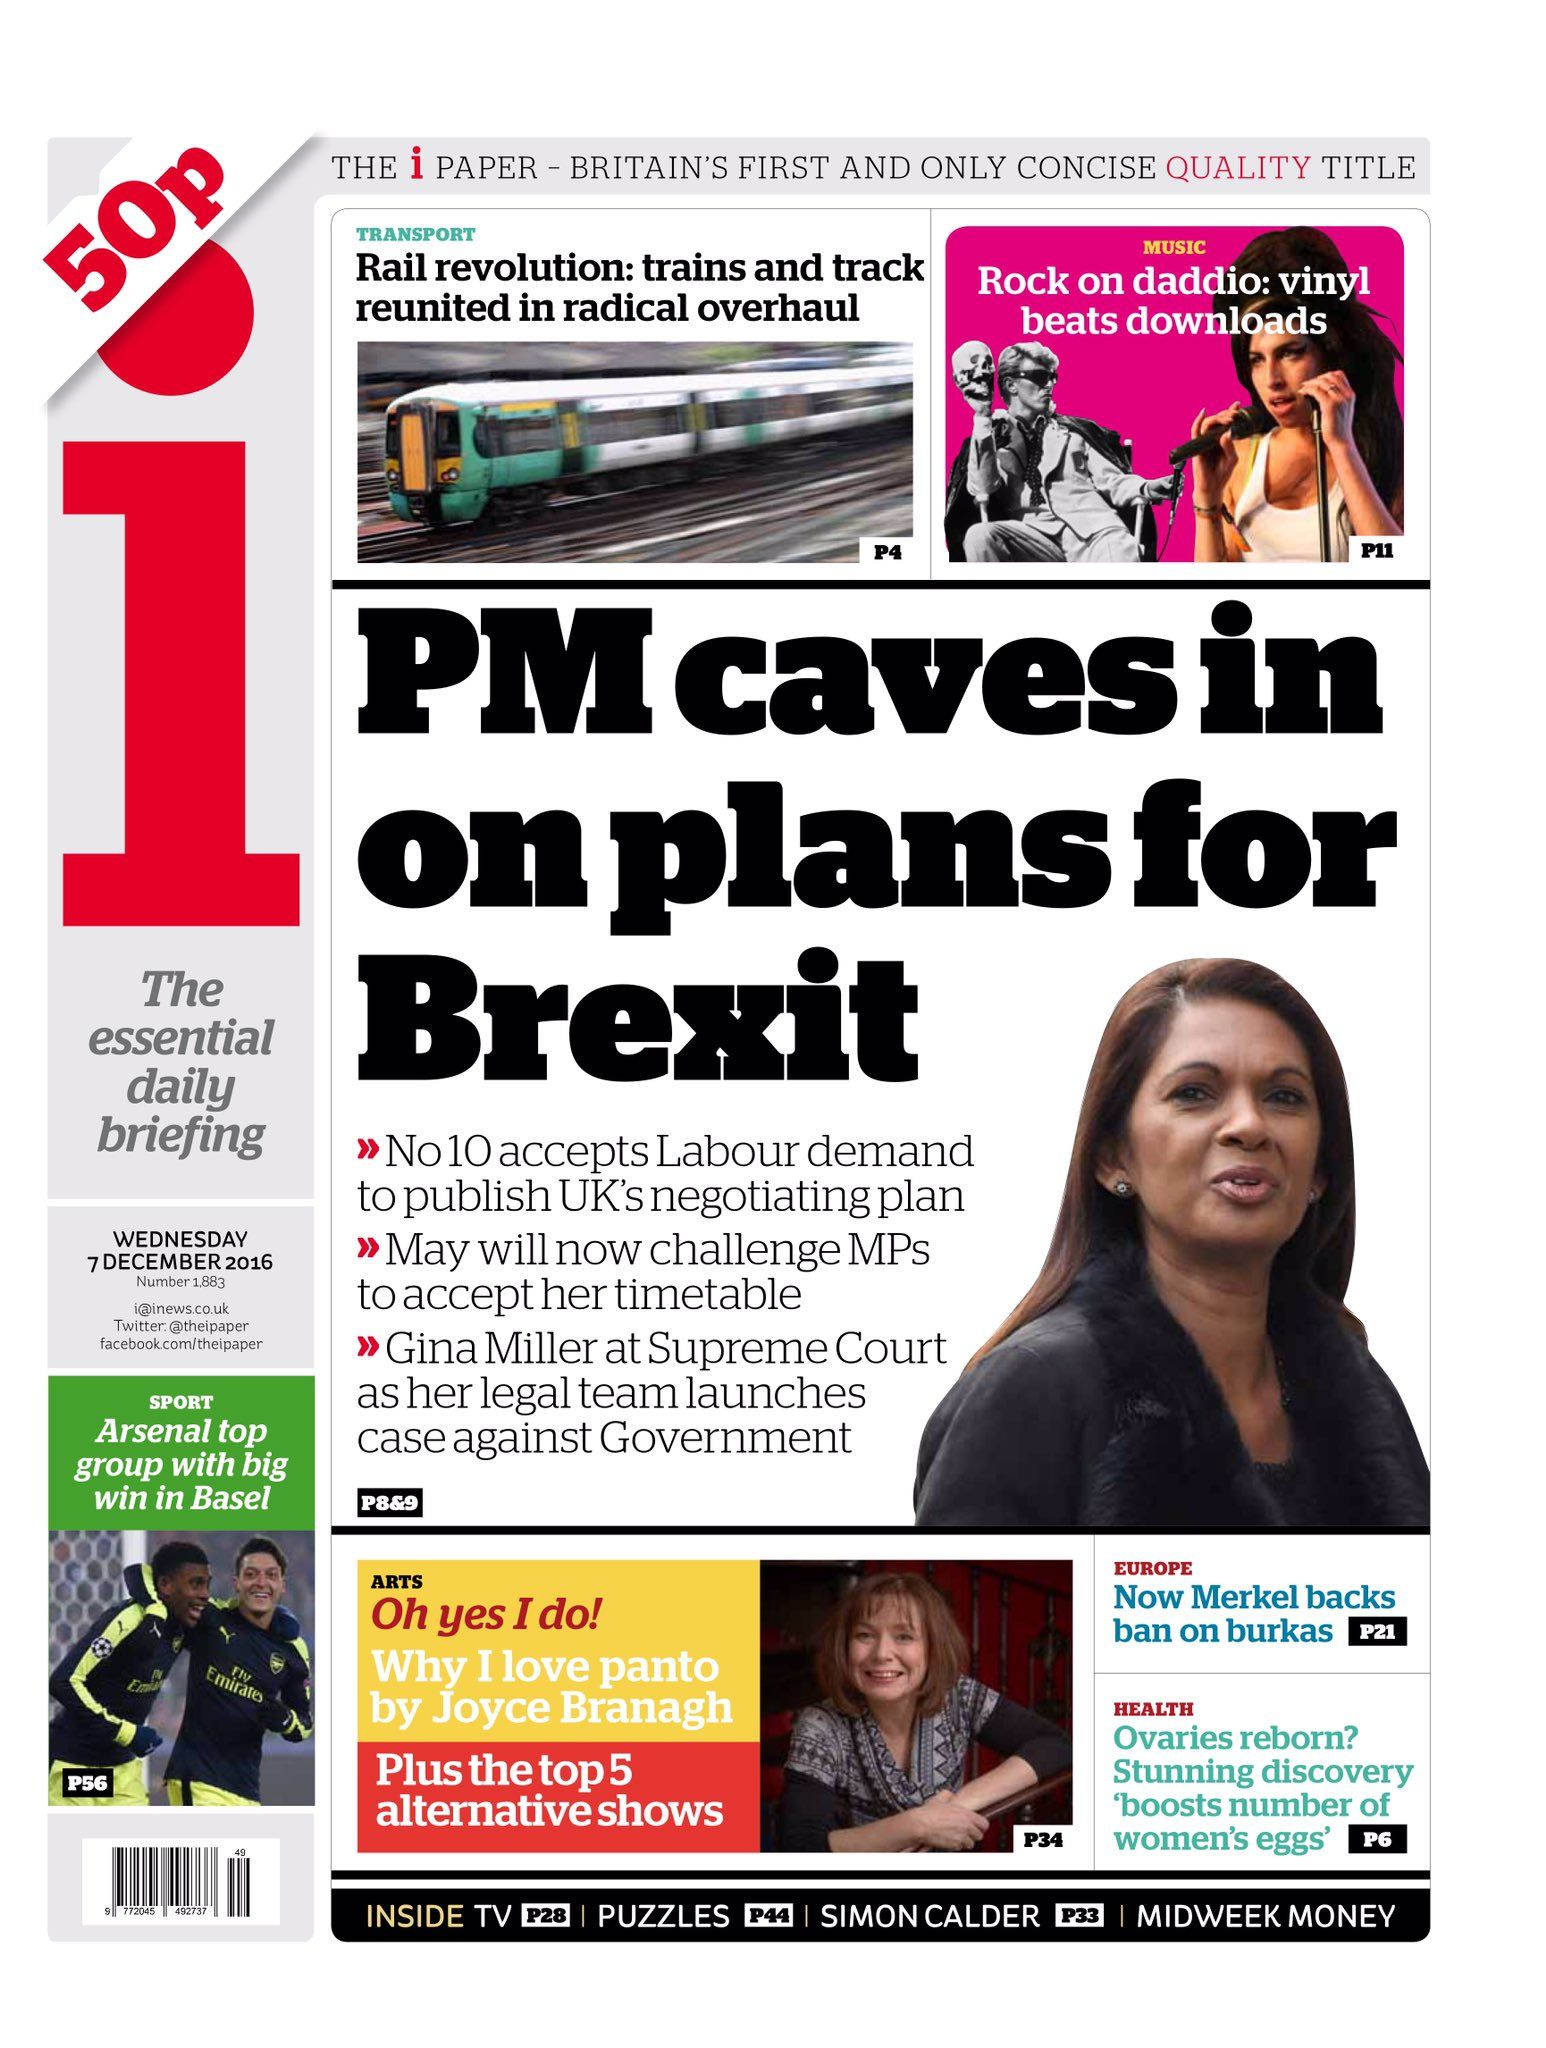 Wednesday's i front page: PM caves in on plans for Brexit #tomorrowspaperstoday #bbcpapers https://t.co/10gwJJl6Qq